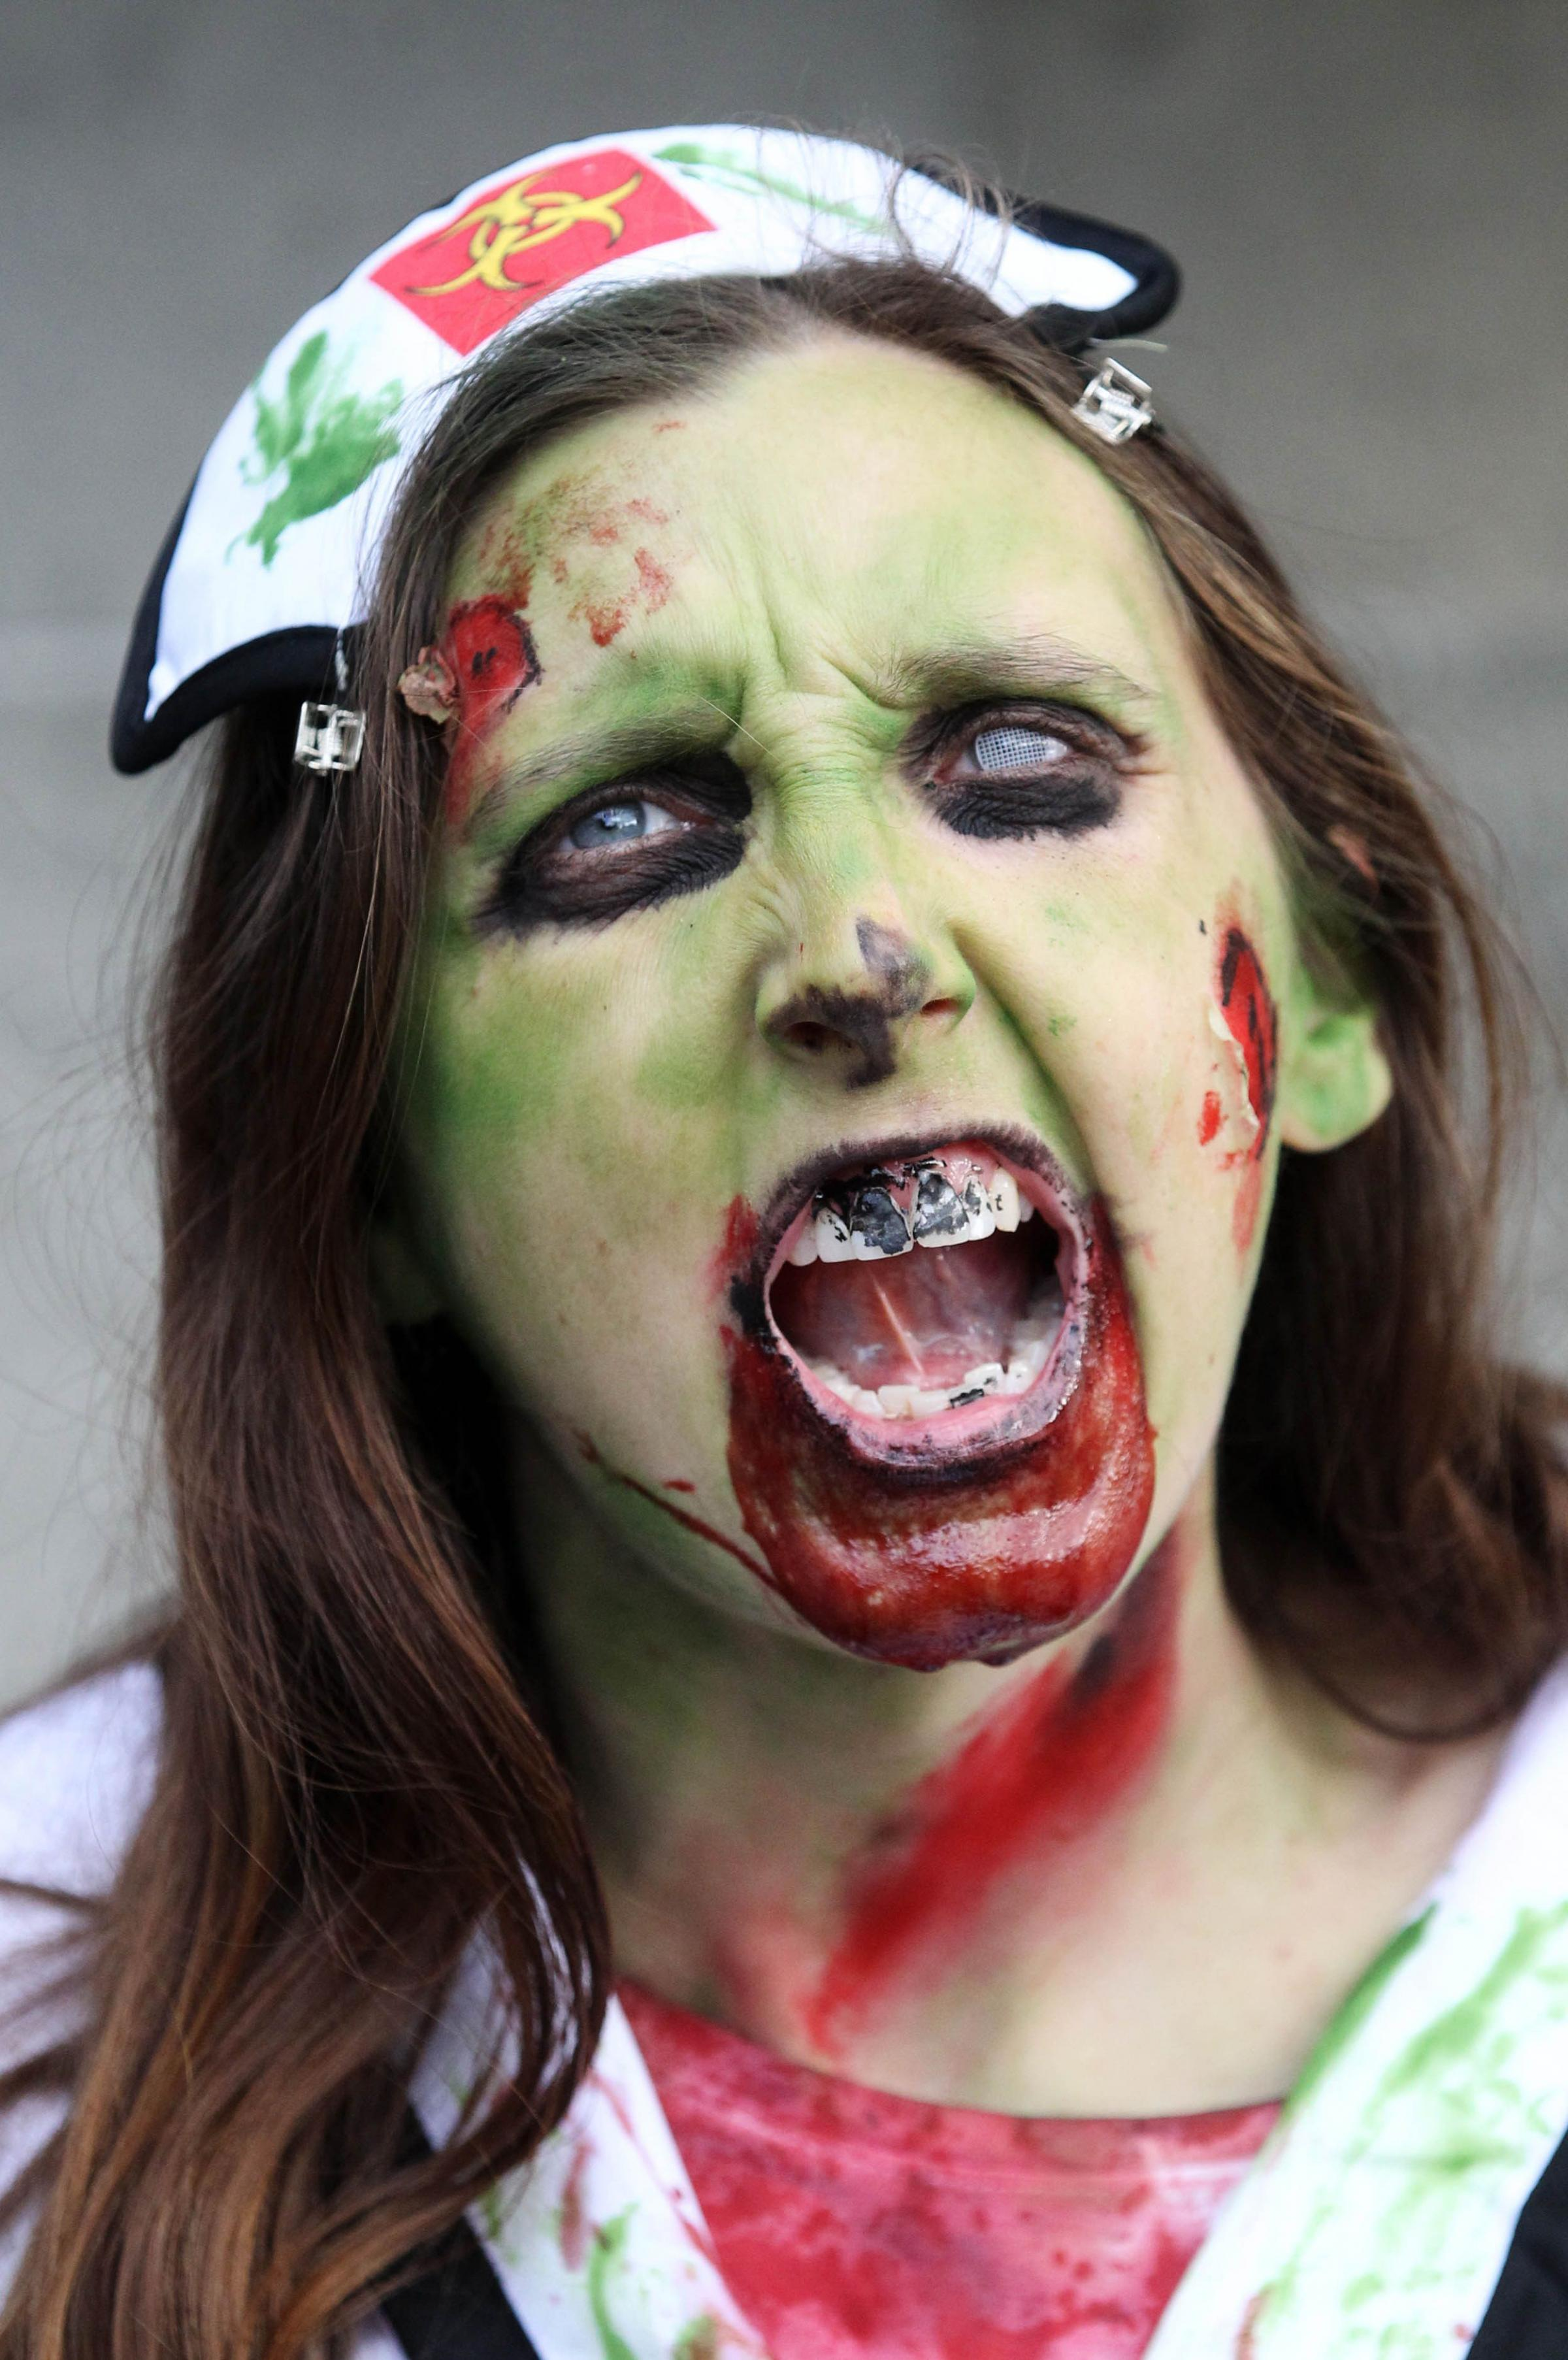 How would you survive a zombie apocalypse?